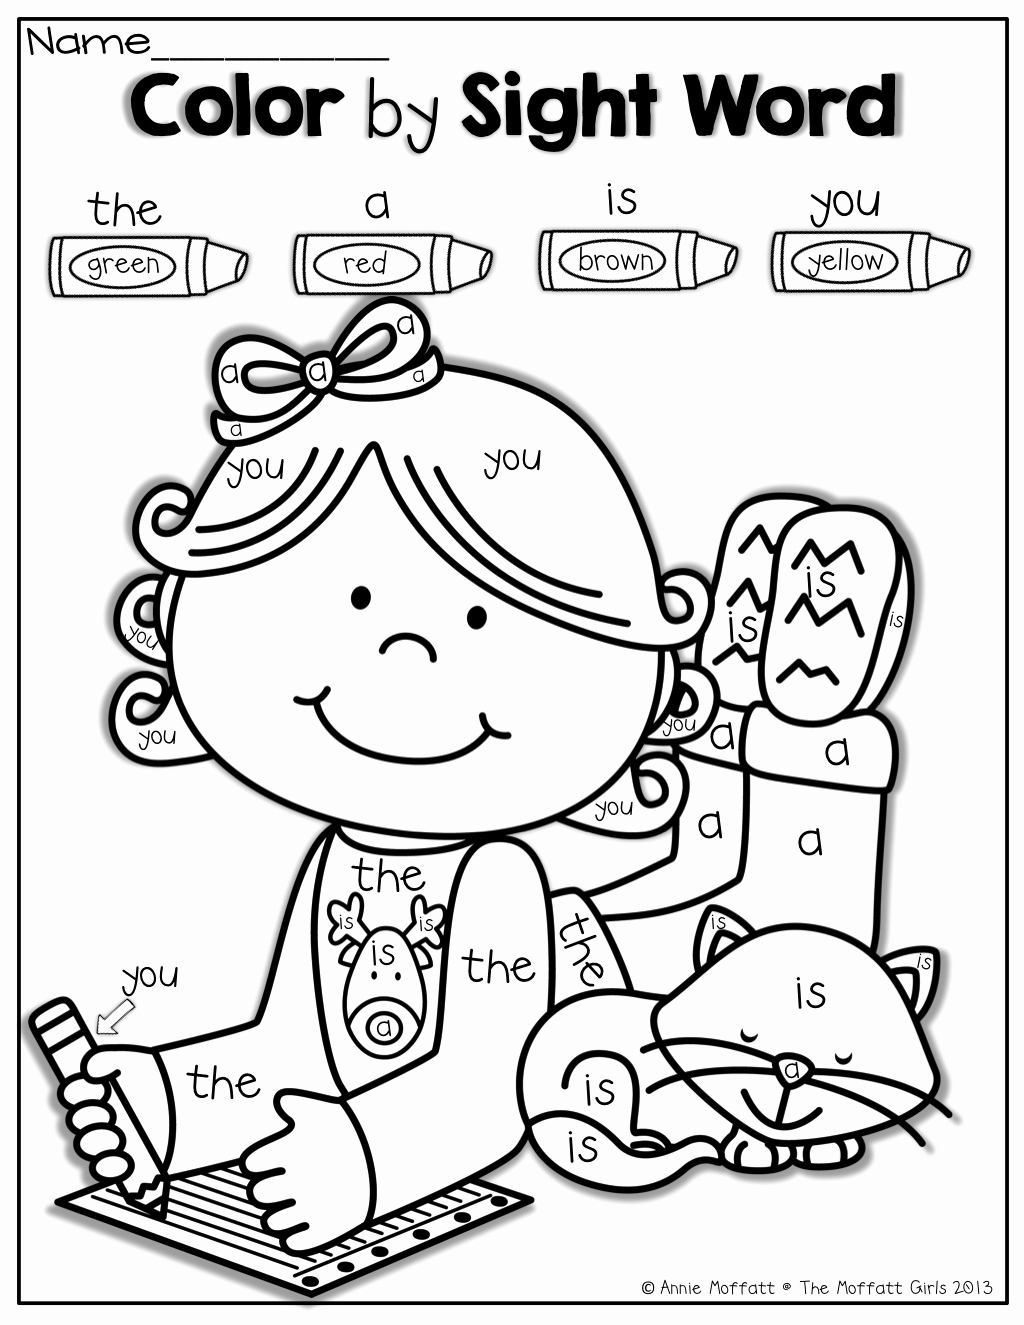 Color Sight Word Worksheets Beautiful Color by Sight Word